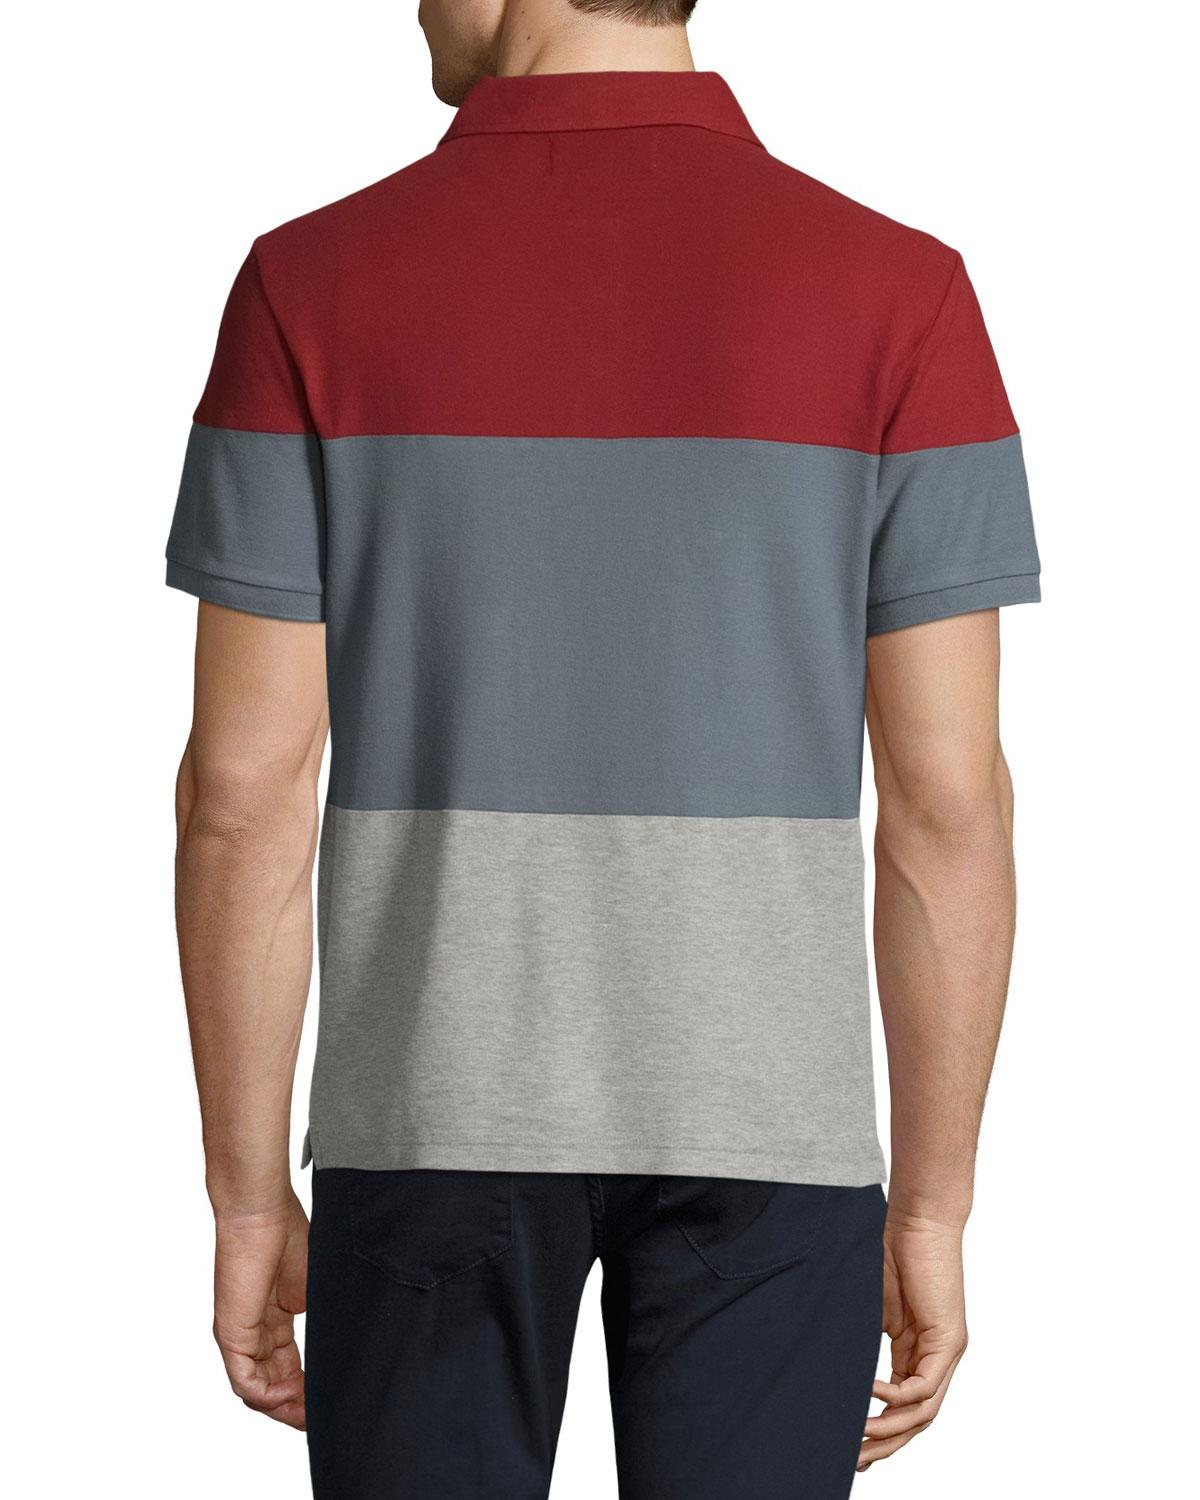 909903c8f7b6 red polo shirts for men - Ecosia